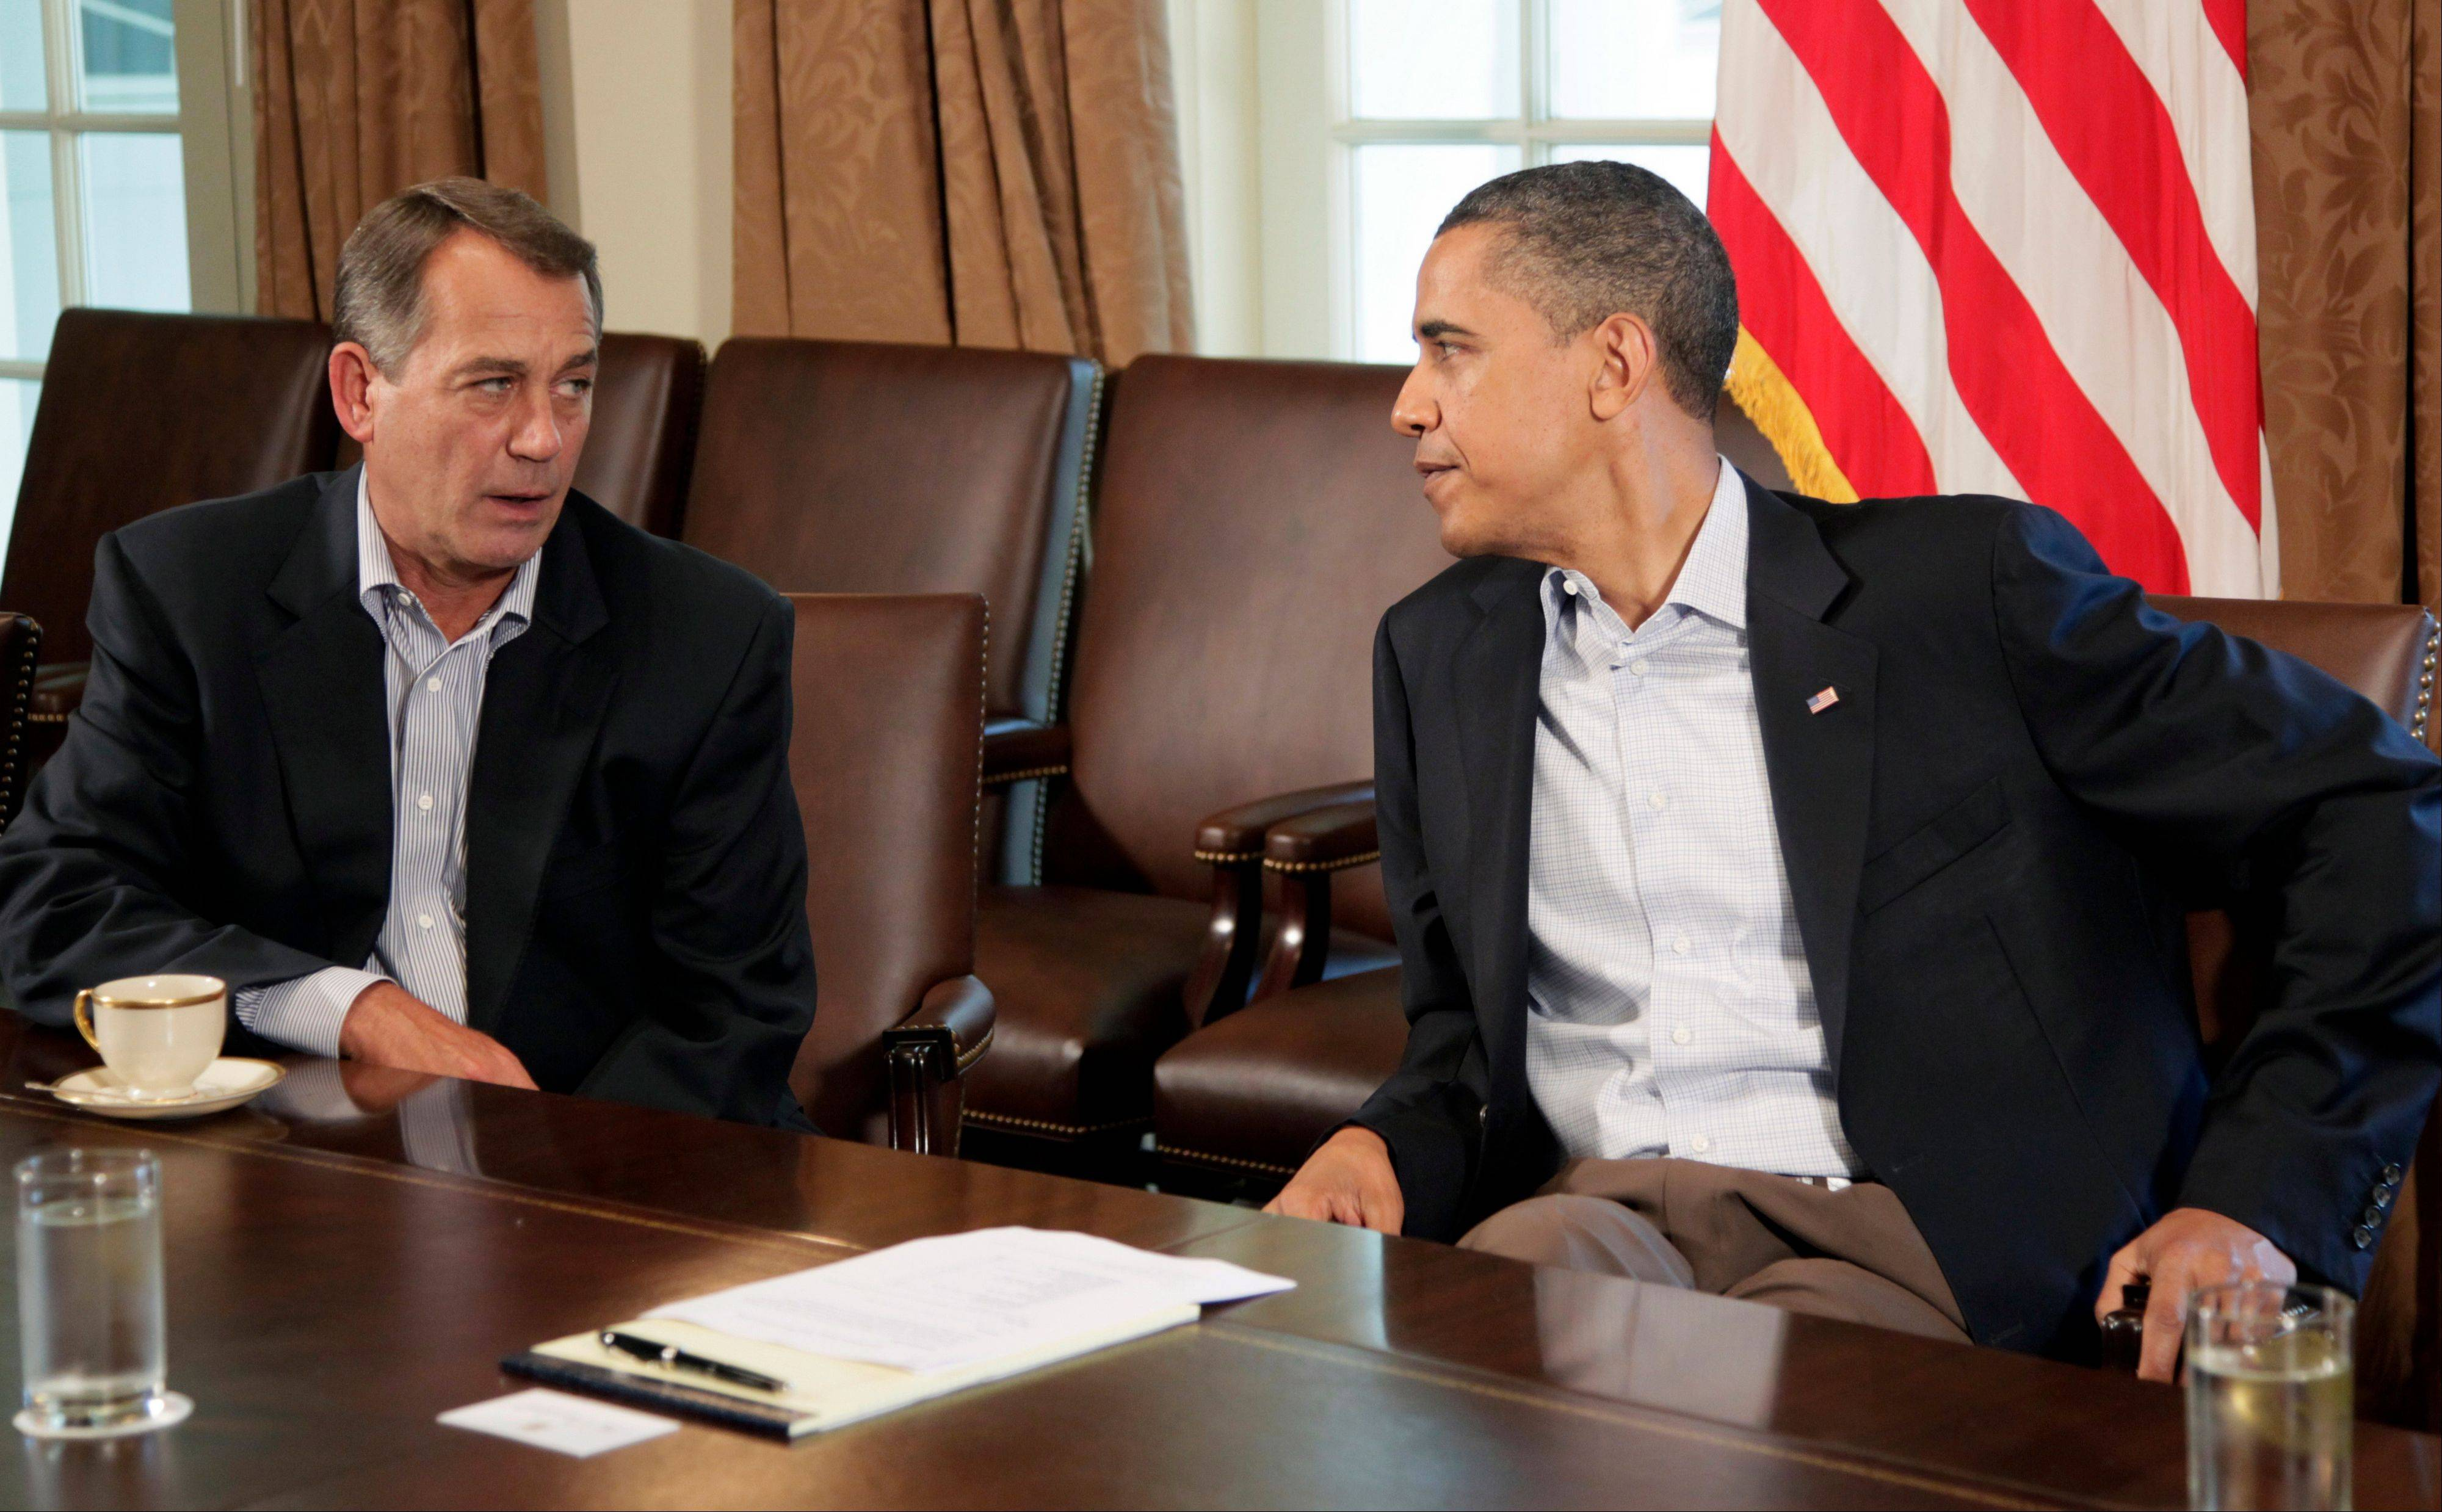 Boehner, Obama relationship tested in debt fight